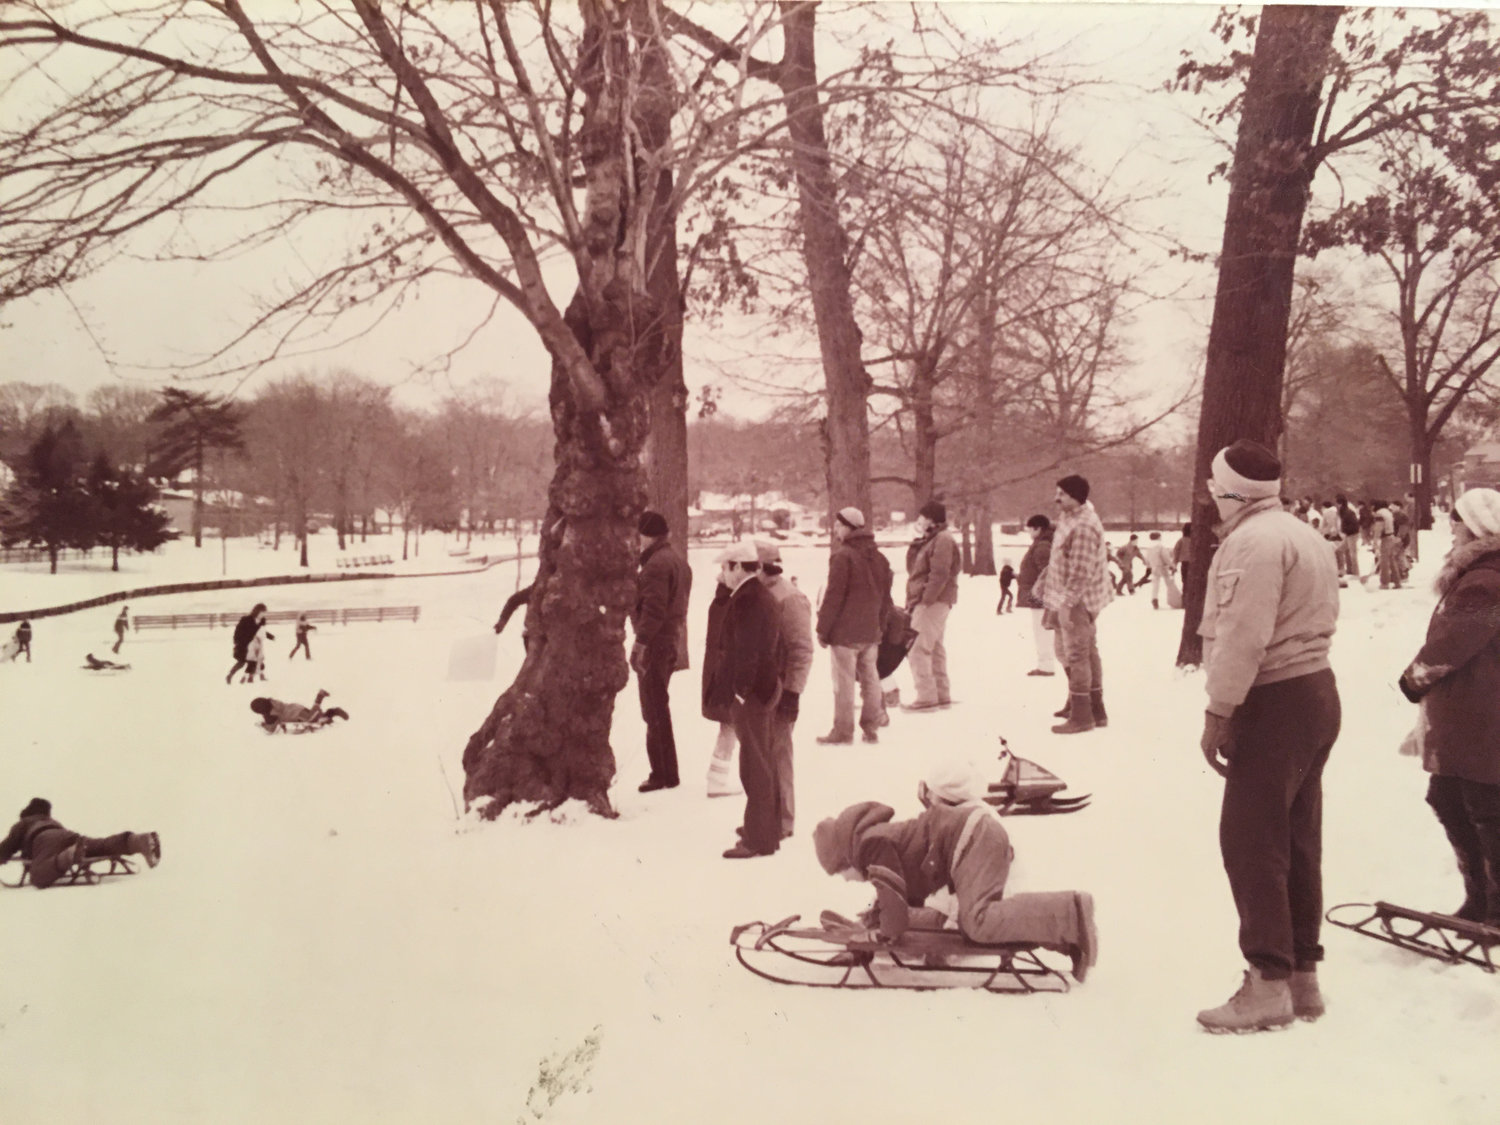 Hall's Pond Park was a popular place to skate during the winter season.